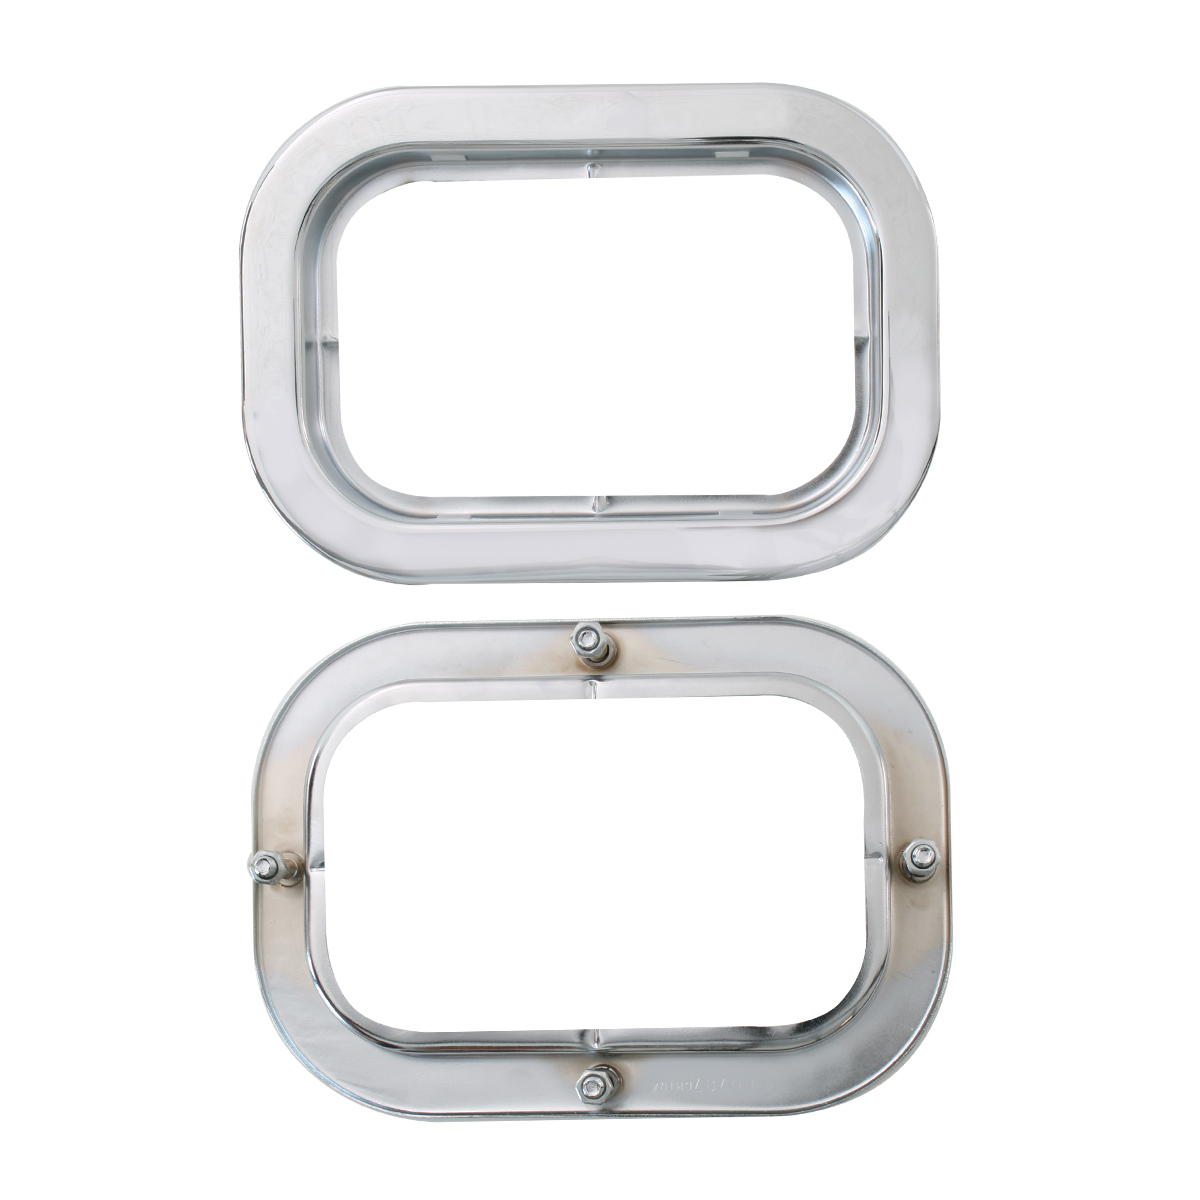 "80797 Front & Back of Chrome Flange Mount Bezel with Hidden Studs for 5.25"" Large Rectangular Light"